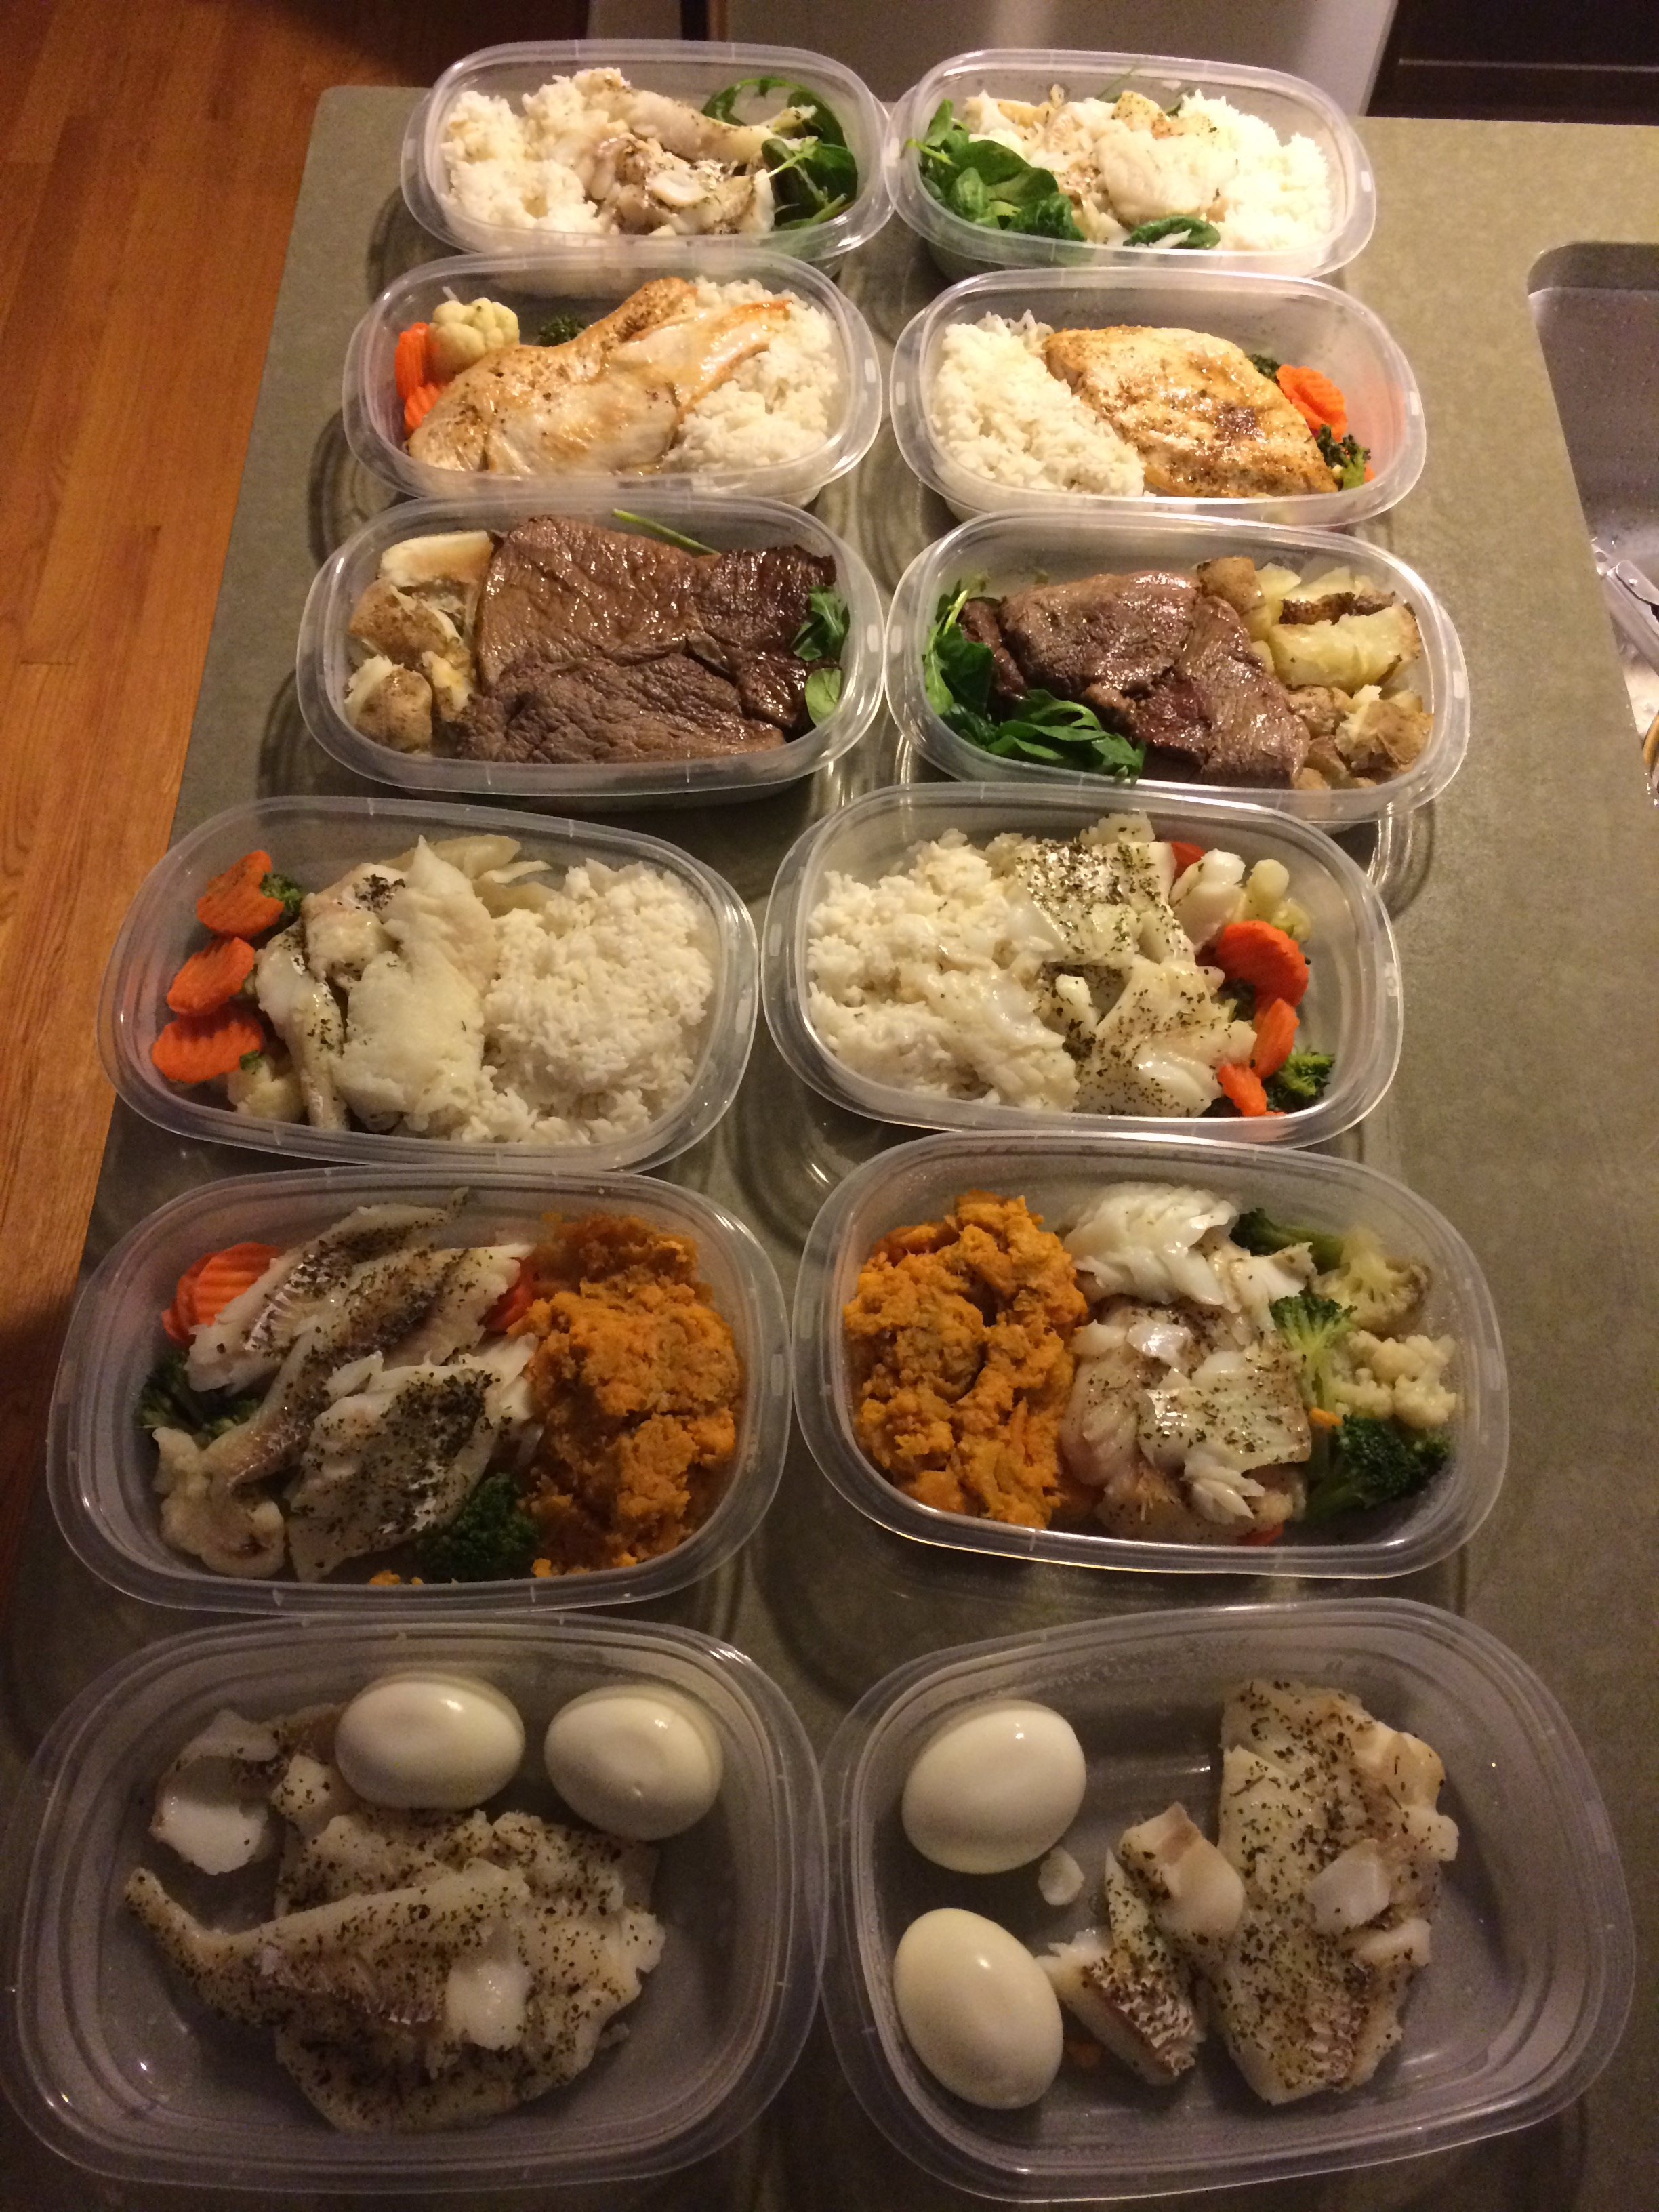 Two days-worth of meals.